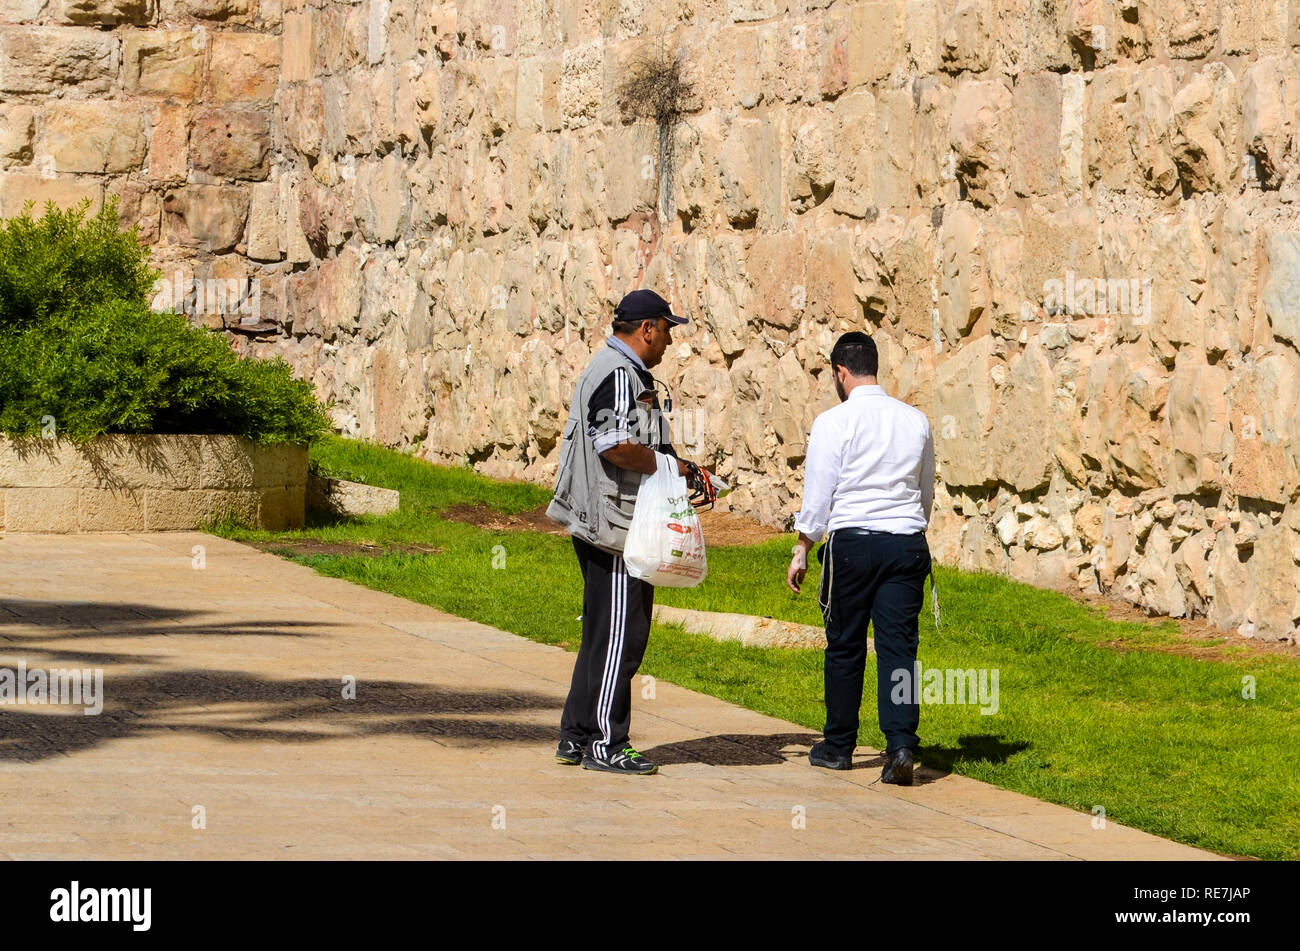 Two men by the City Walls of Jerusalem - Stock Image